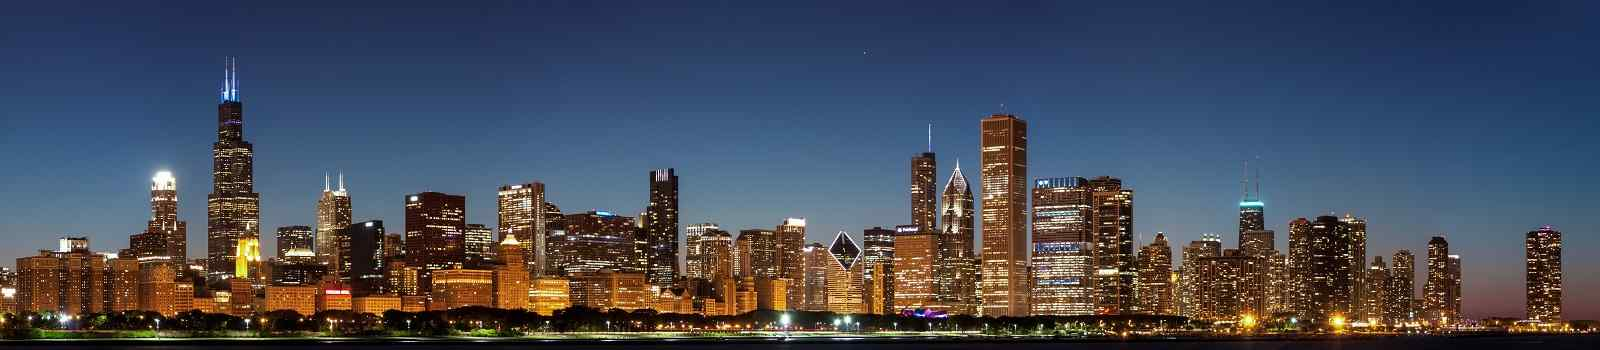 CHI-MARATHON -Chicago downtown city skyline at night and Michigan lake shore 106951187